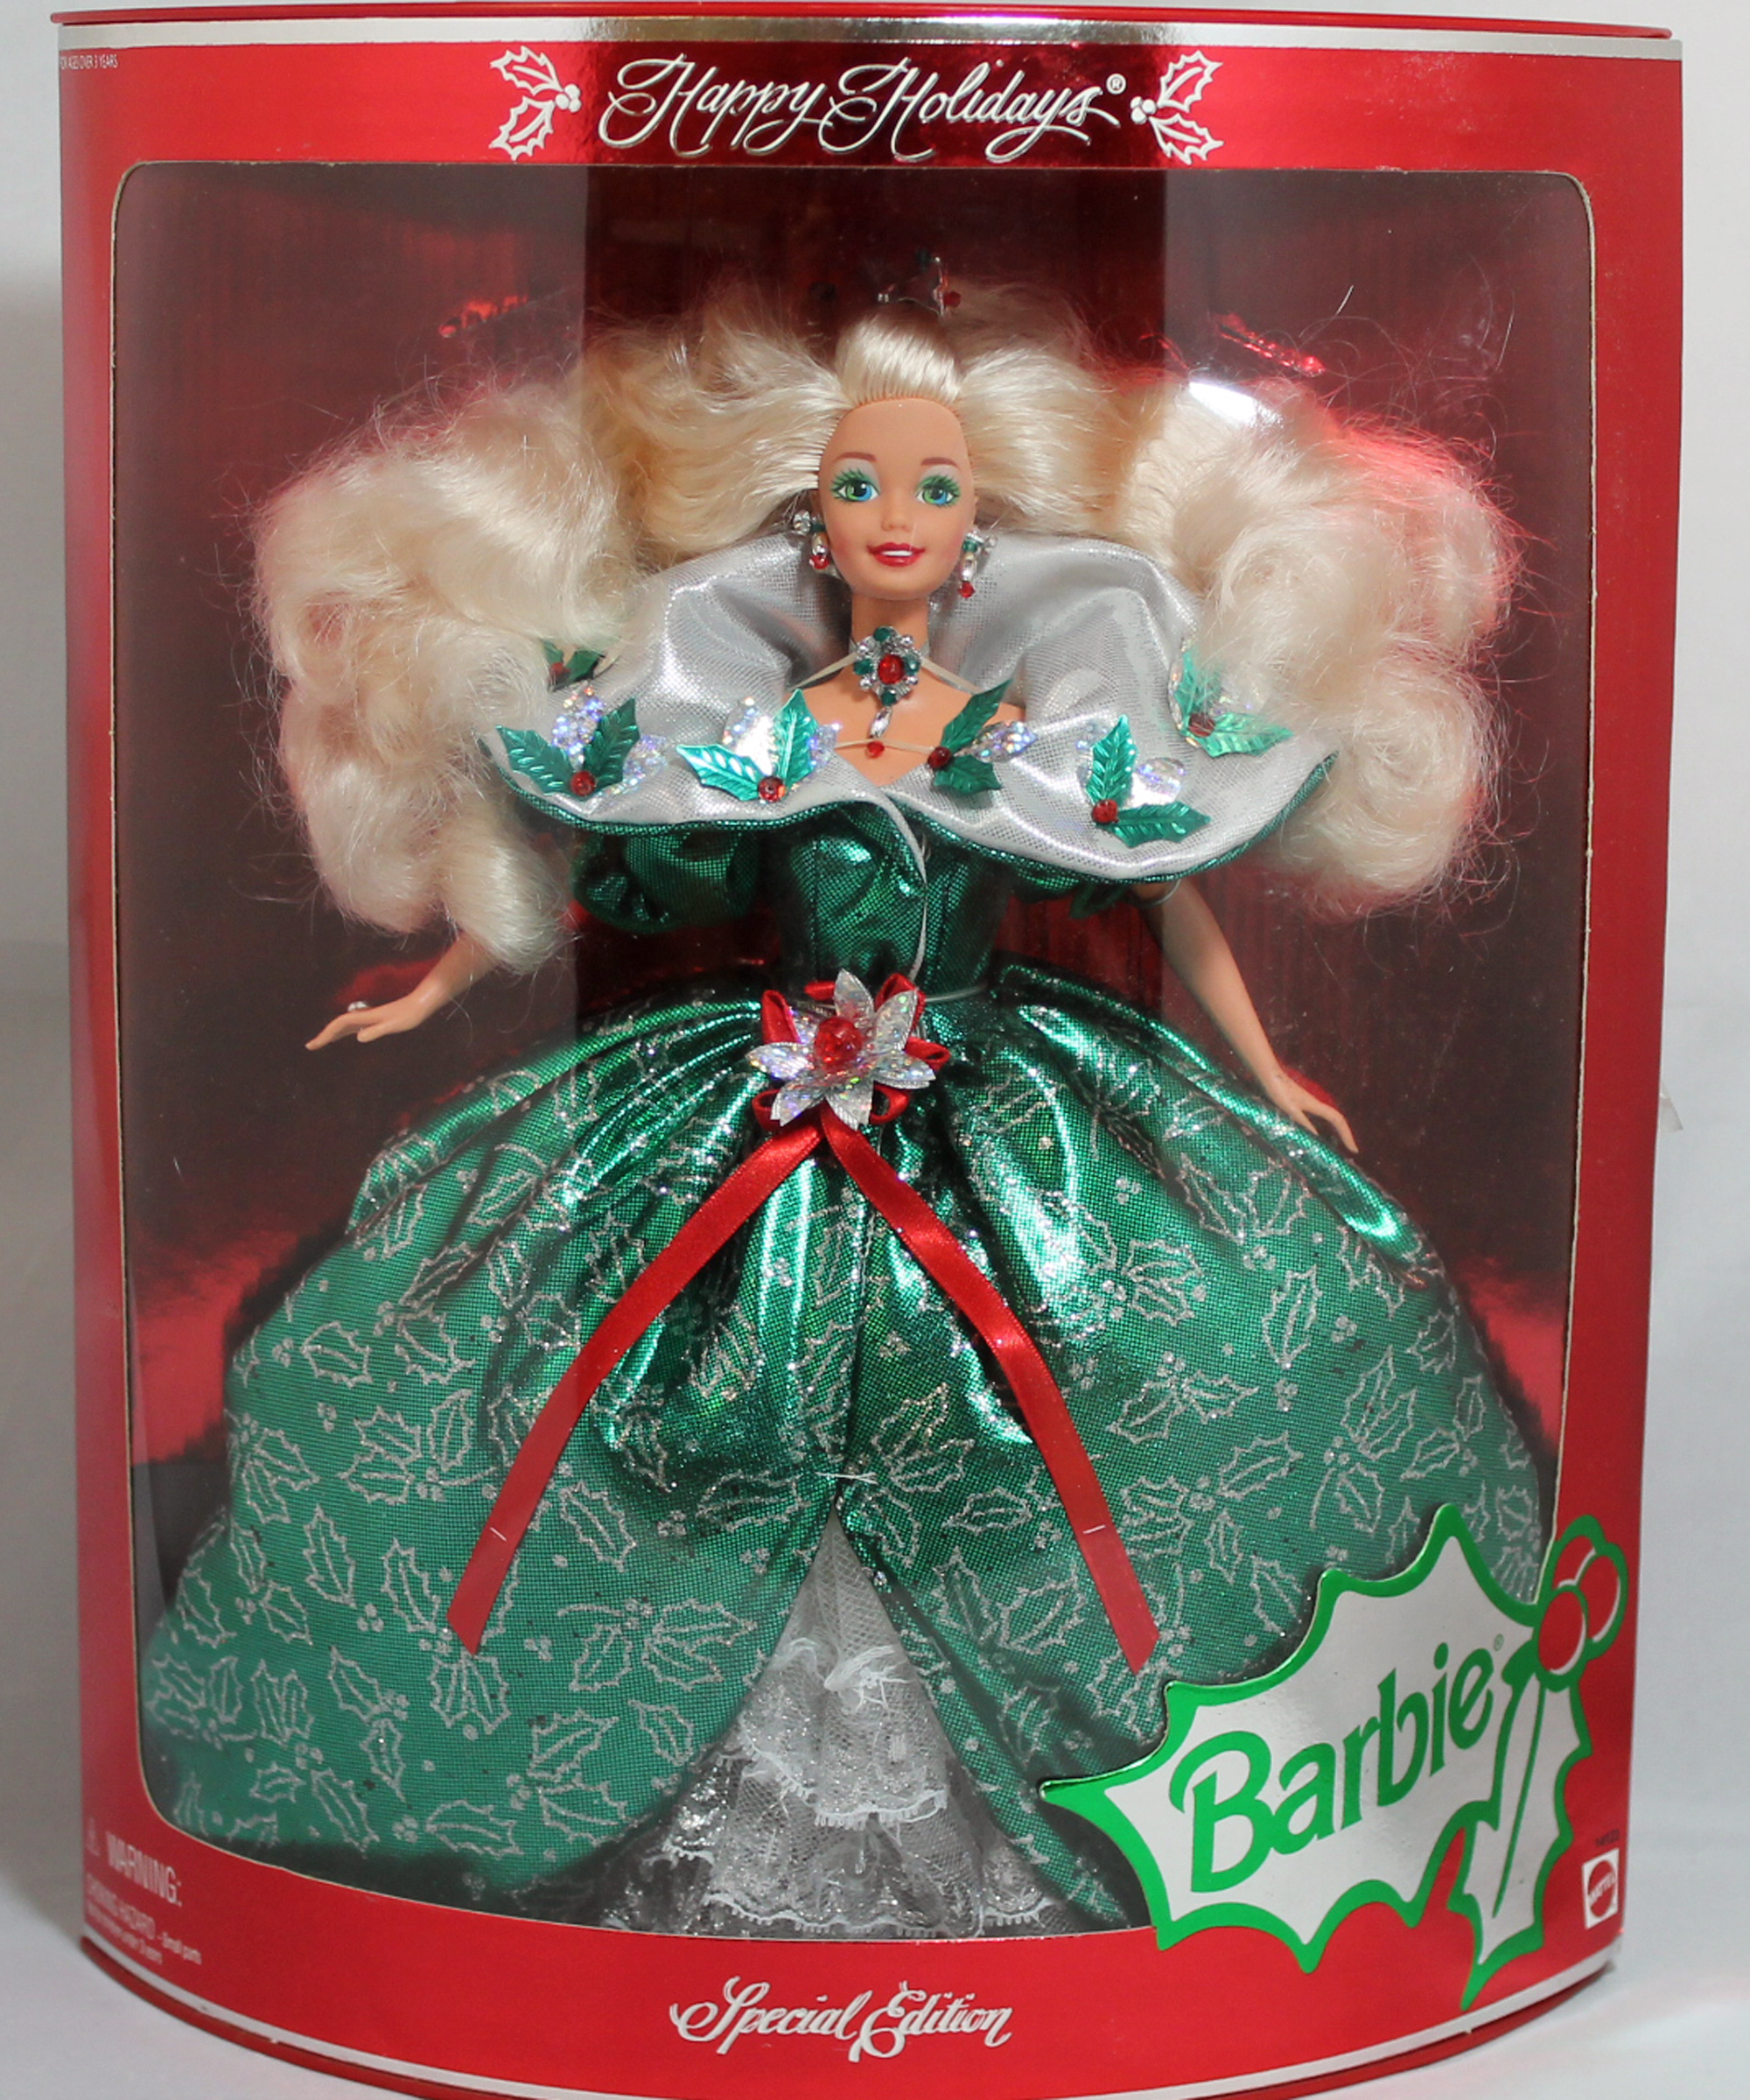 Barbie 14123 damaged box 1995 Happy Holidays Doll 7429914123 | eBay